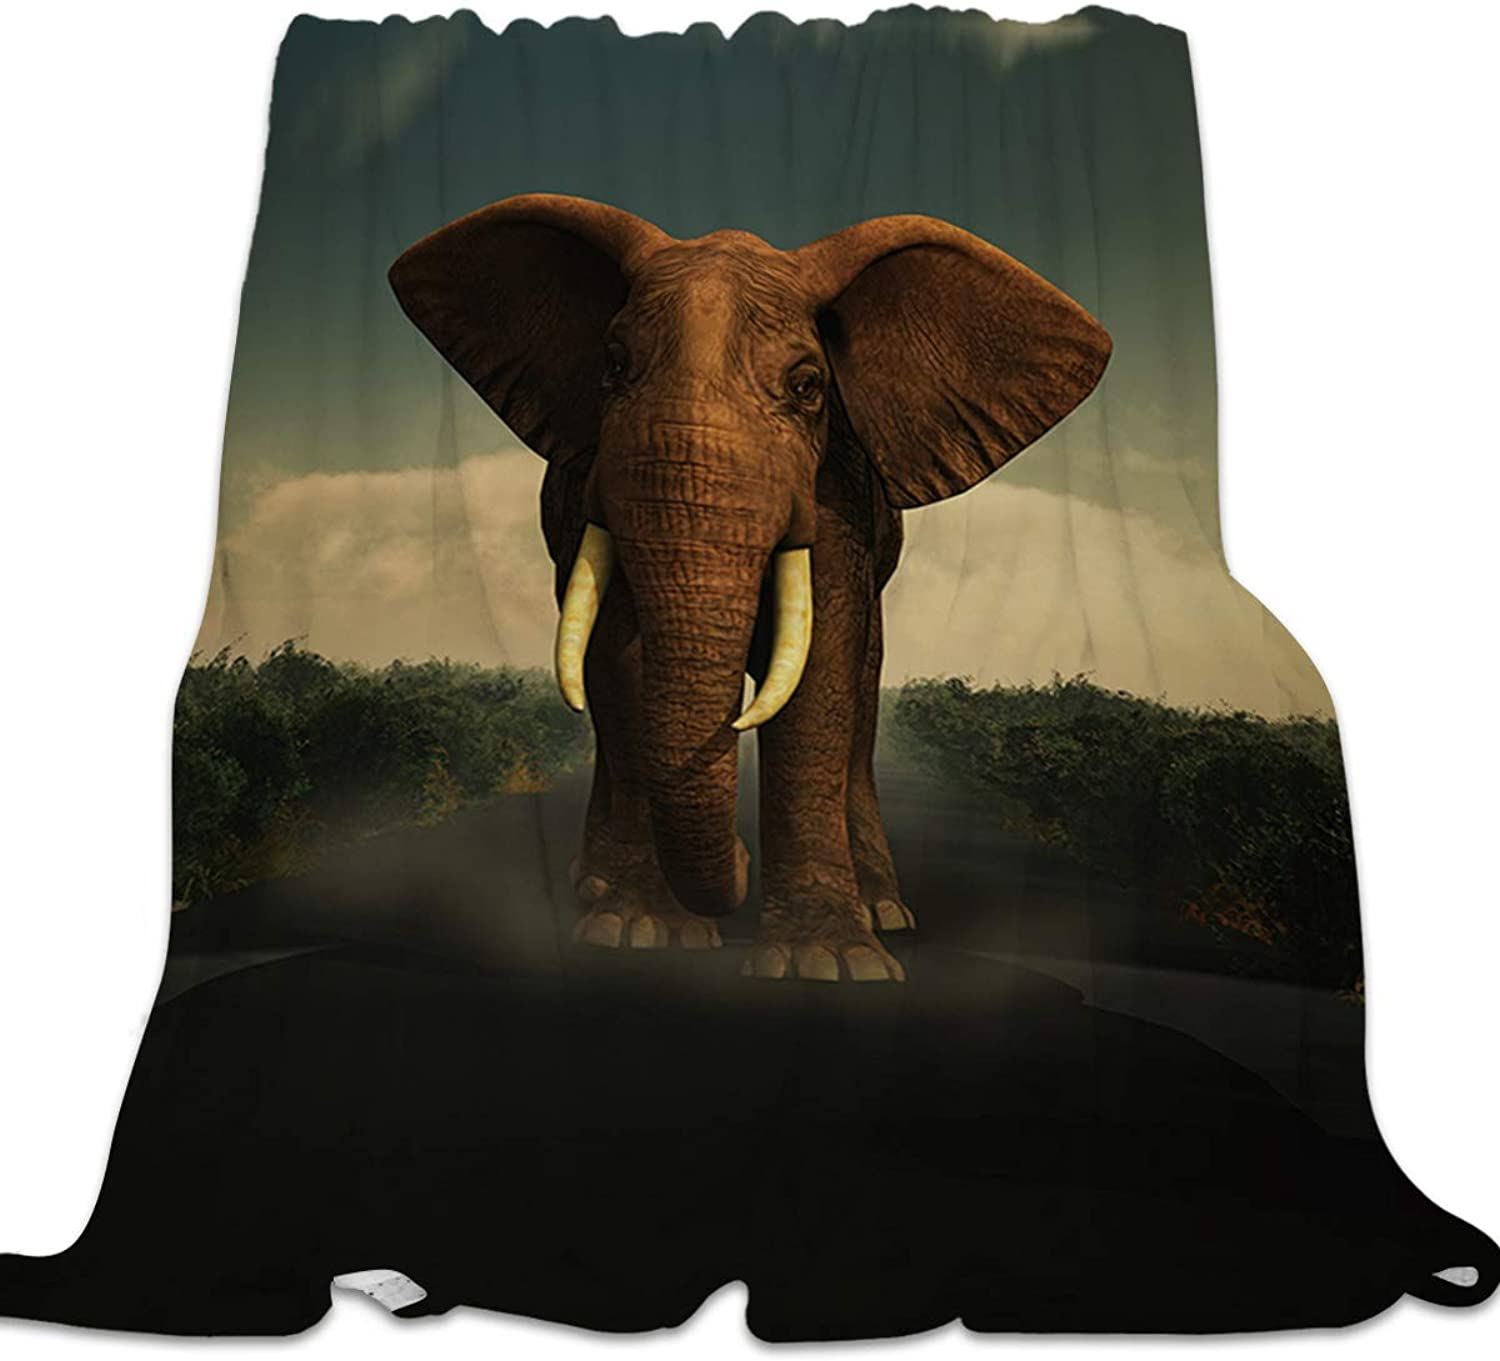 YEHO Art Gallery Flannel Fleece Bed Blanket Super Soft Cozy Throw-Blankets for Kids Girls Boys,Lightweight Blankets for Bed Sofa Couch Chair Day Nap,Cool 3D Elephant Animal Pattern,39x49inch